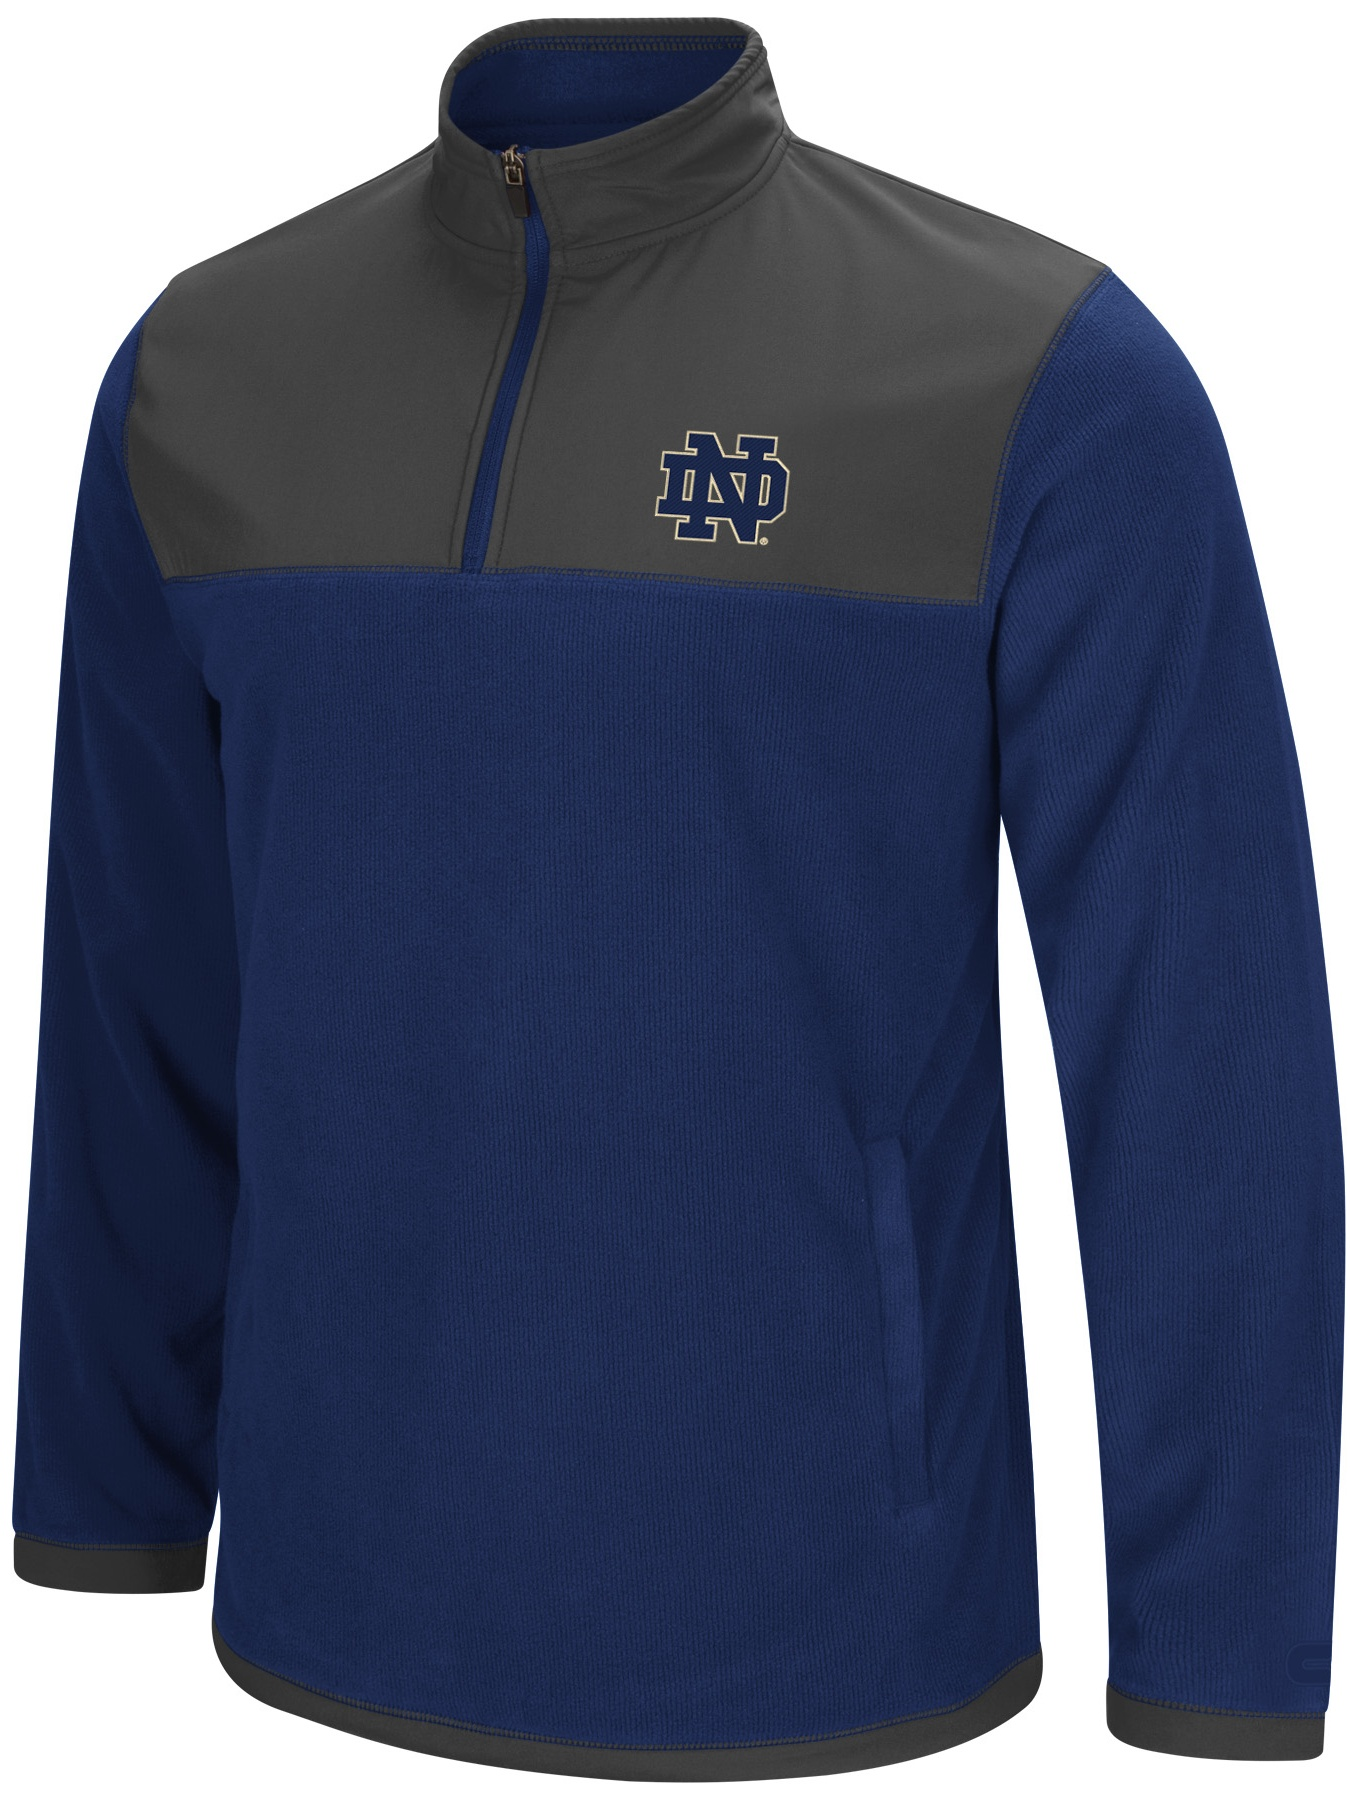 "Notre Dame Fighting Irish NCAA ""Blocker"" Men's 1 4 Zip Corduroy Fleece Jacket by Colosseum"